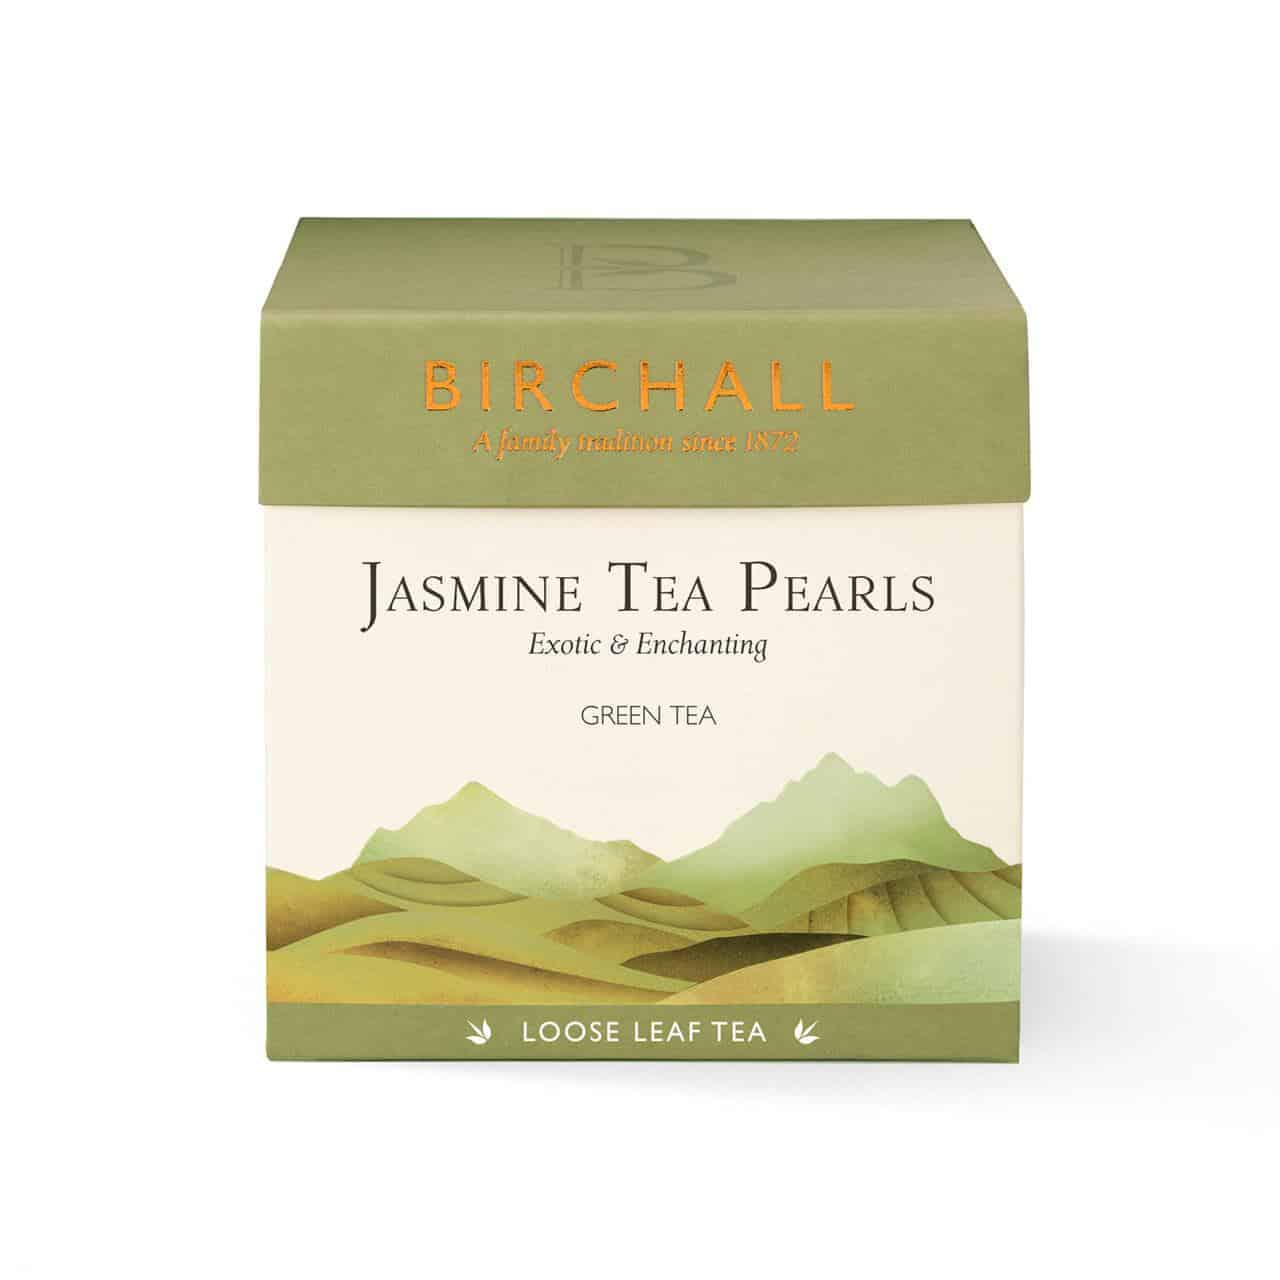 Birchall Jasmine Tea Pearls - Loose Leaf Tea